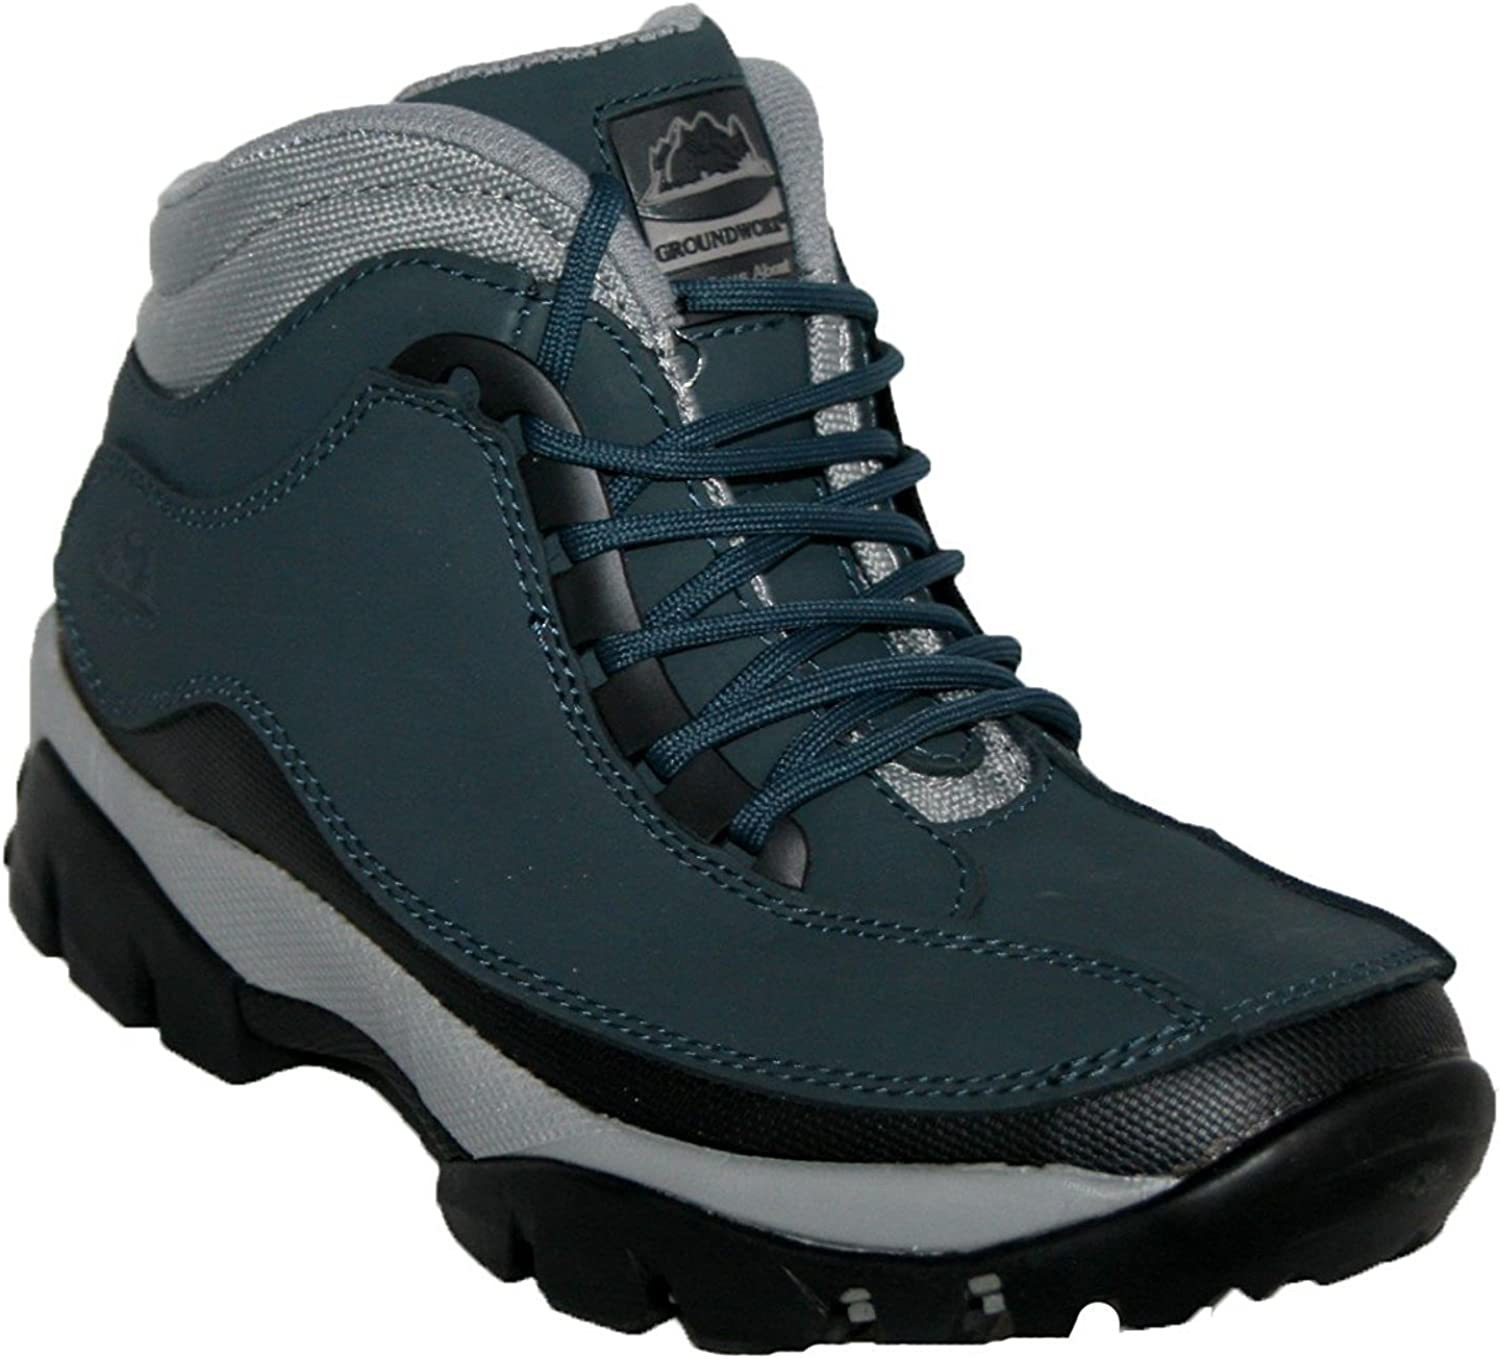 WOMENS SAFETY BOOTS GROUNDWORK GR386 STEEL TOE CAP LACE UP ANTI SLIP LEATHER